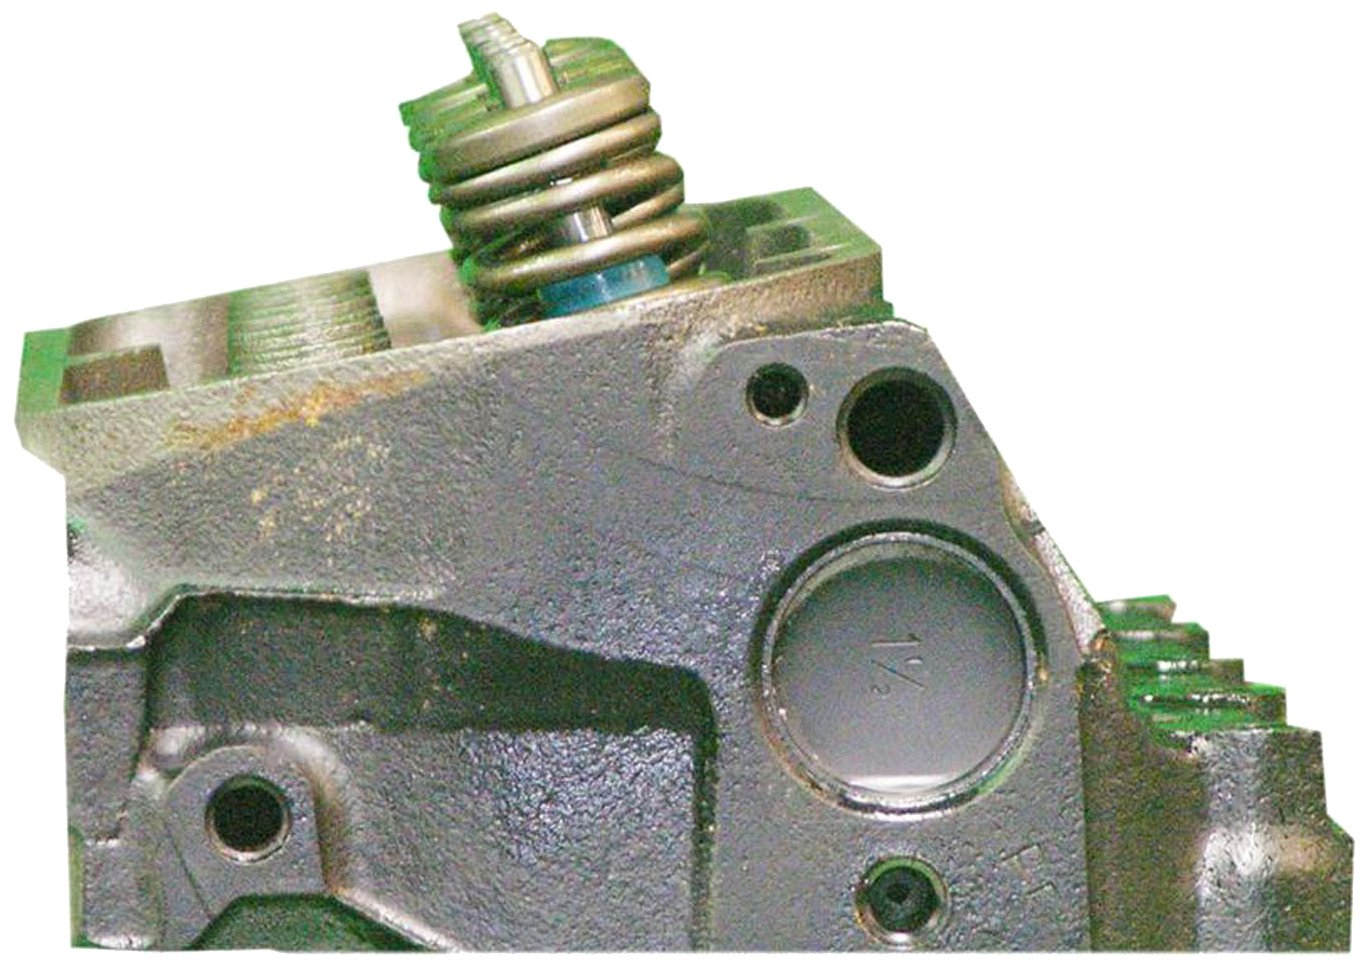 PROFessional Powertrain 2F94 Ford 302 87-96 Remanufactured Cylinder Head